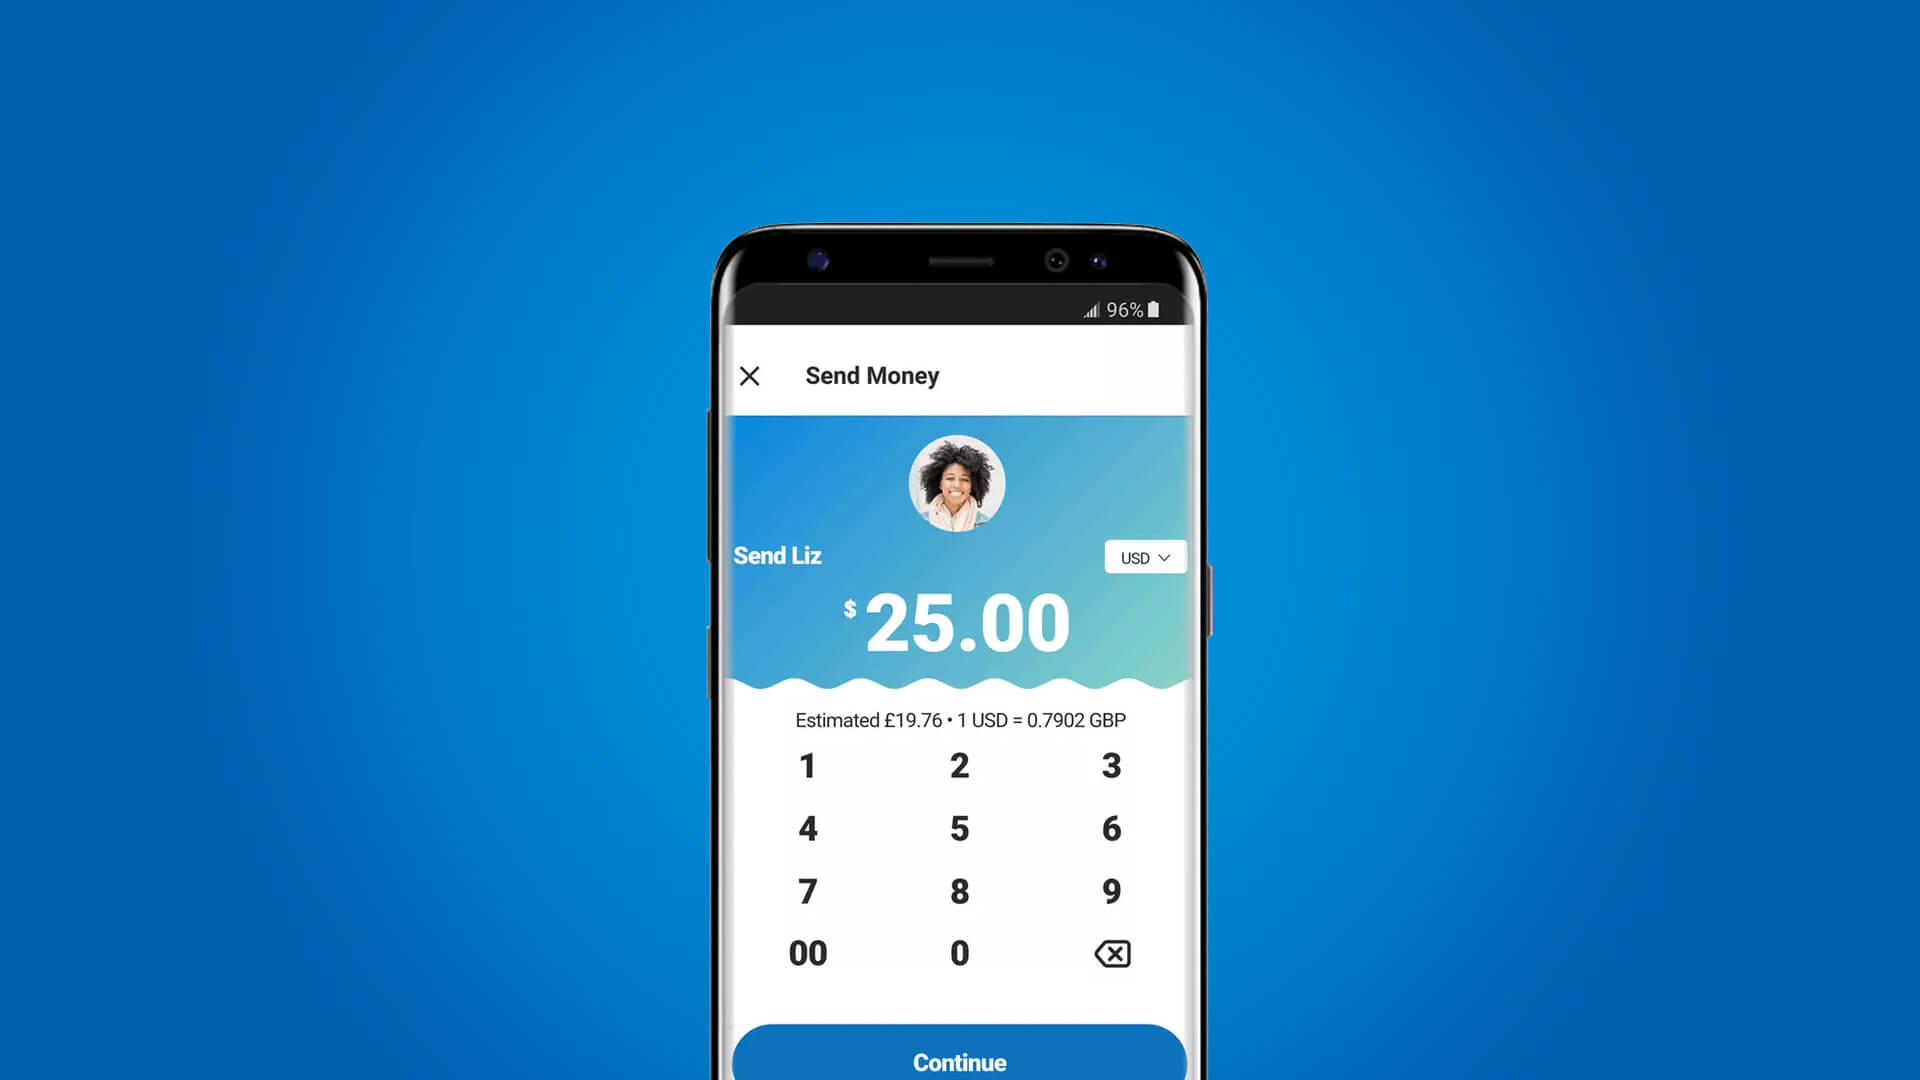 Transfer skype credit to paypal